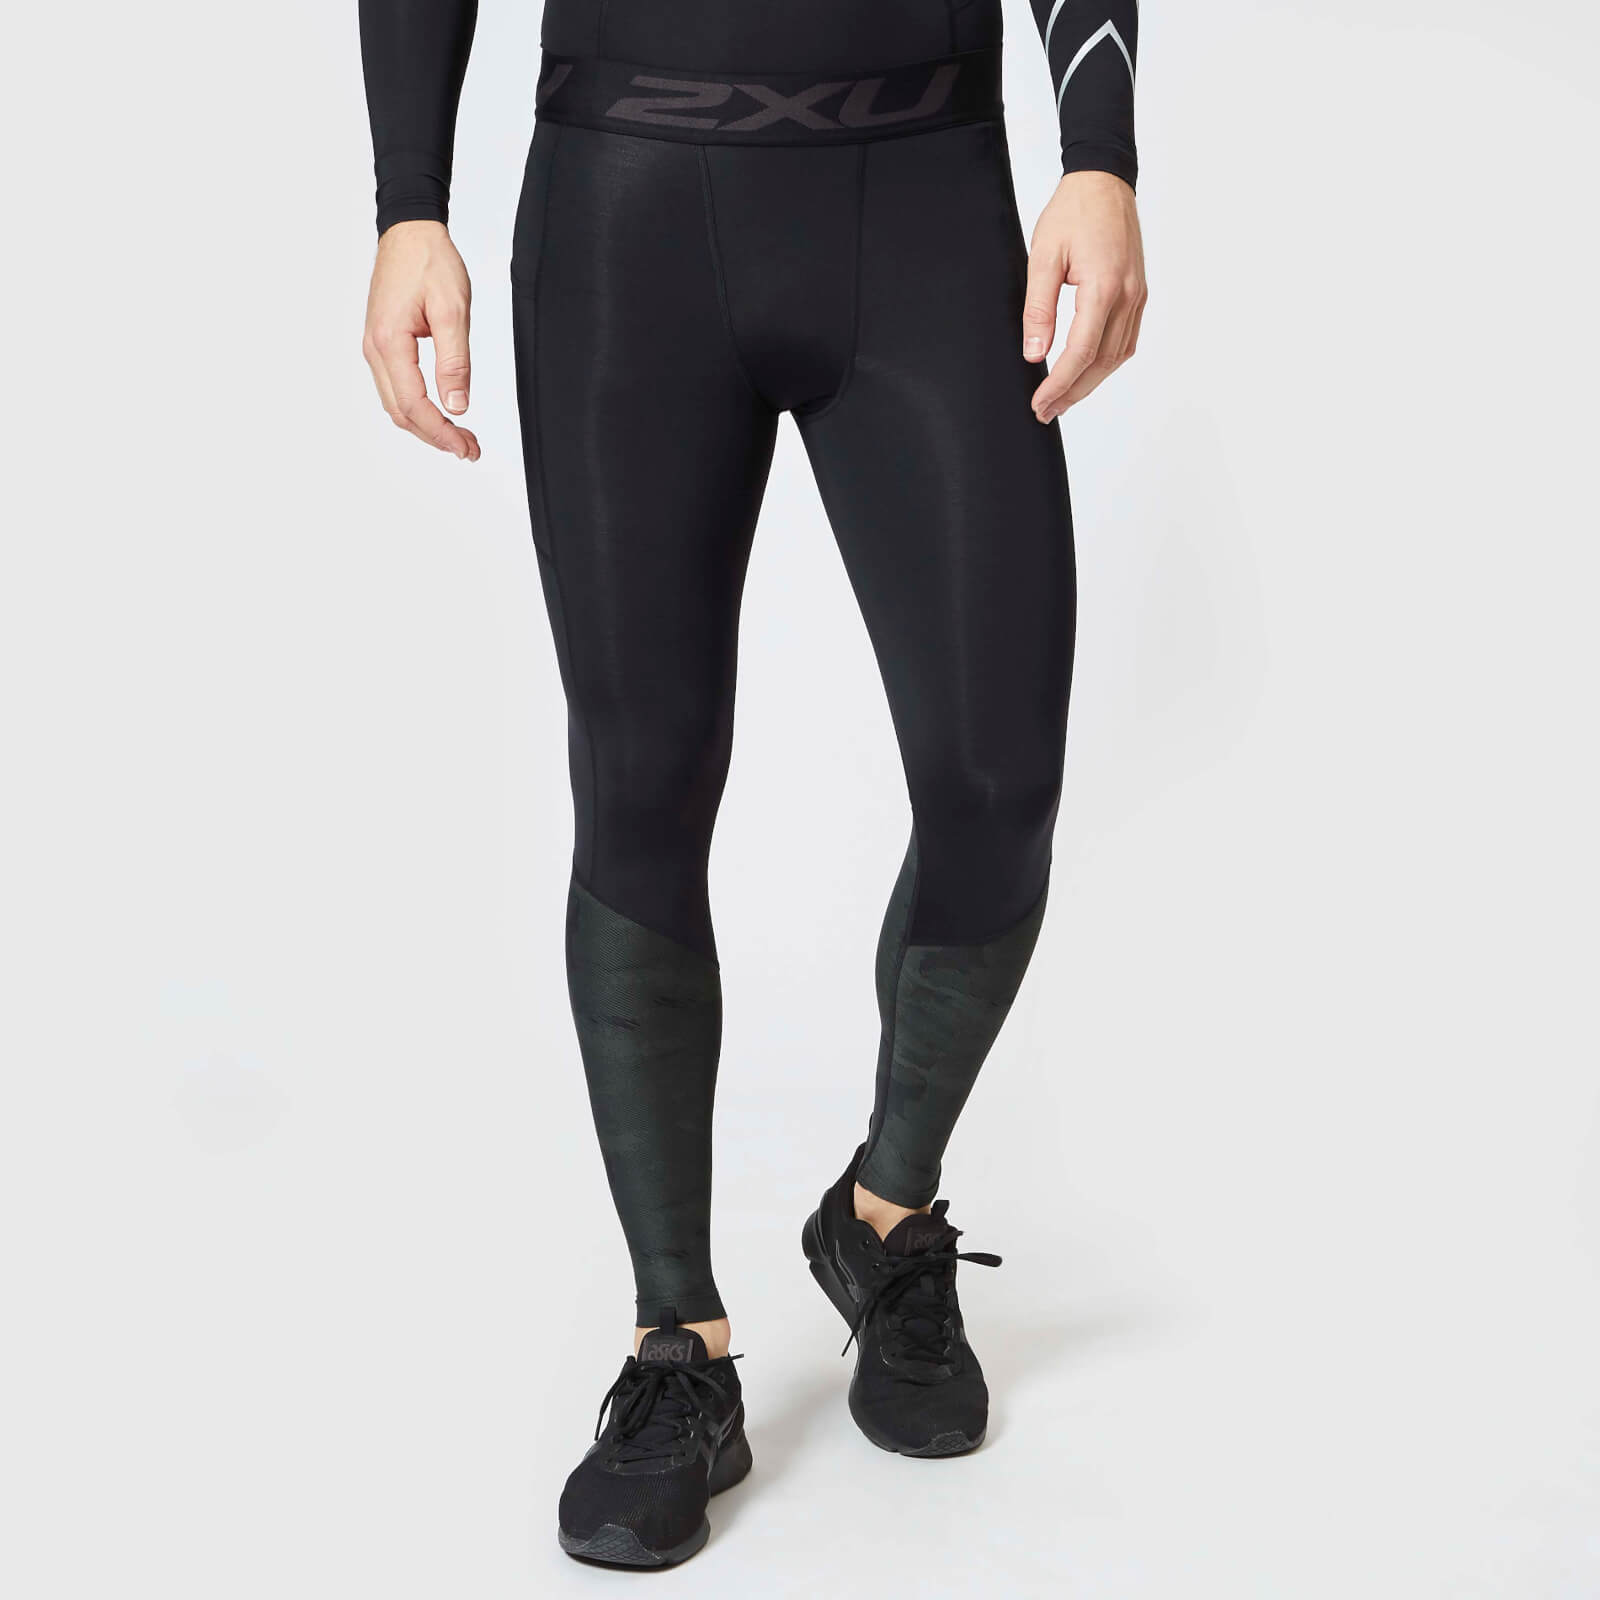 33b0737665 2XU Men's Accelerate Compression Tights with Storage - Black Clothing |  TheHut.com